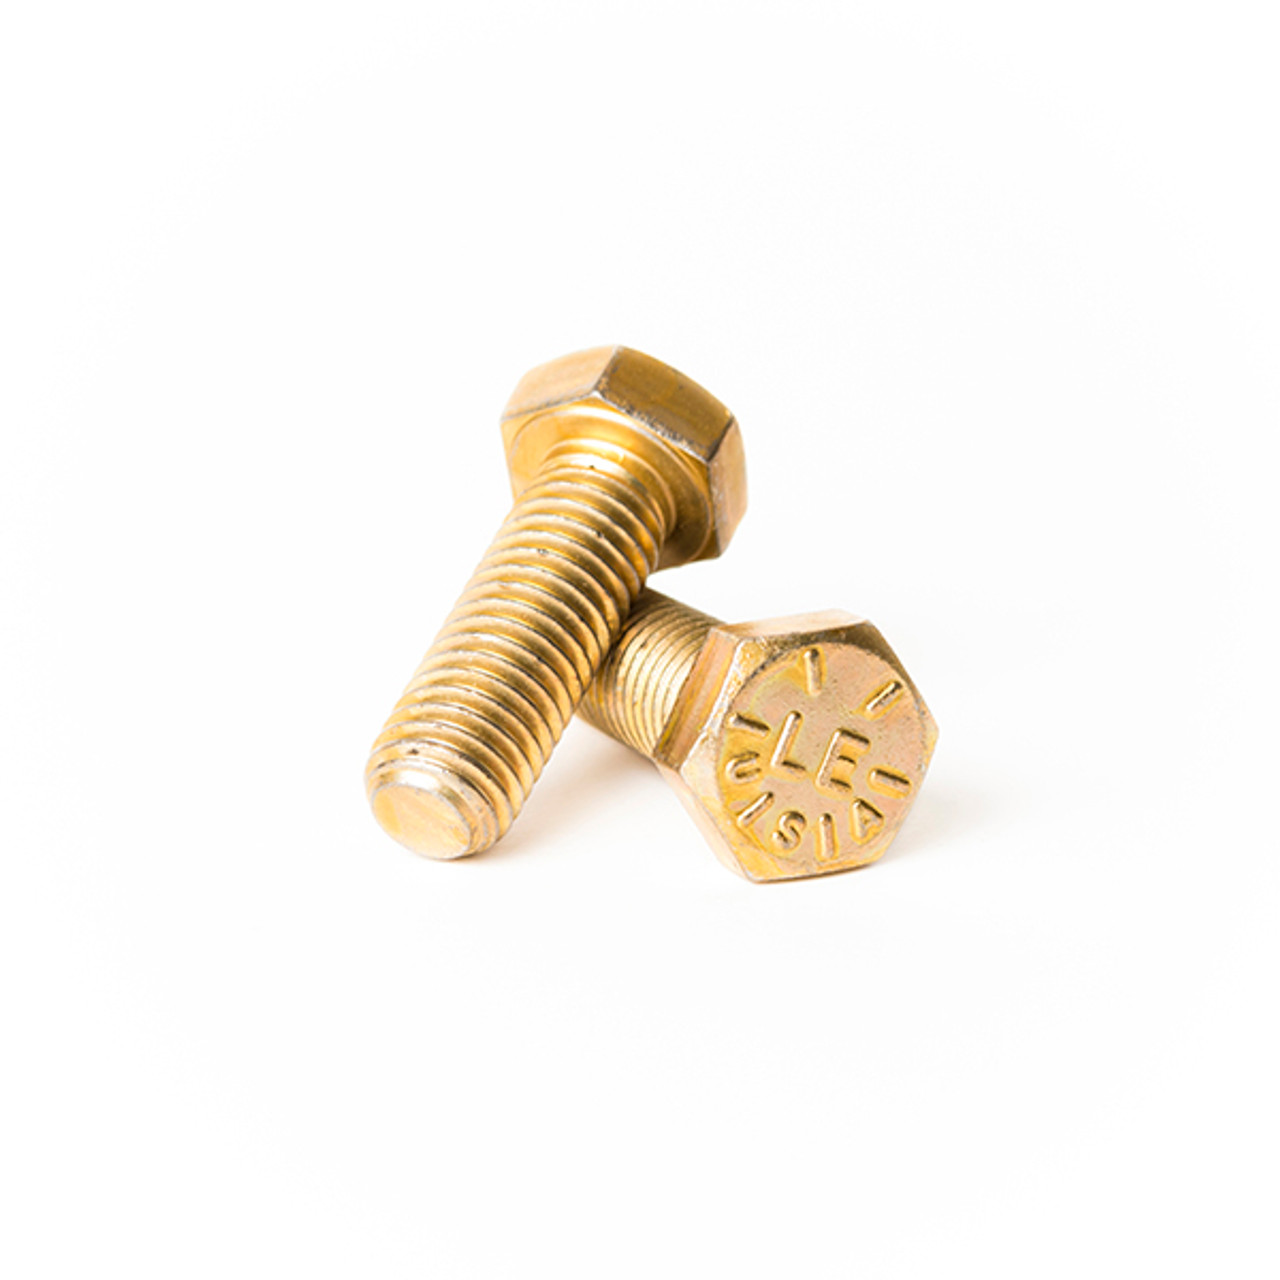 5//16-18 x 4 Coarse Thread Hex Cap Screw Brass Bolt